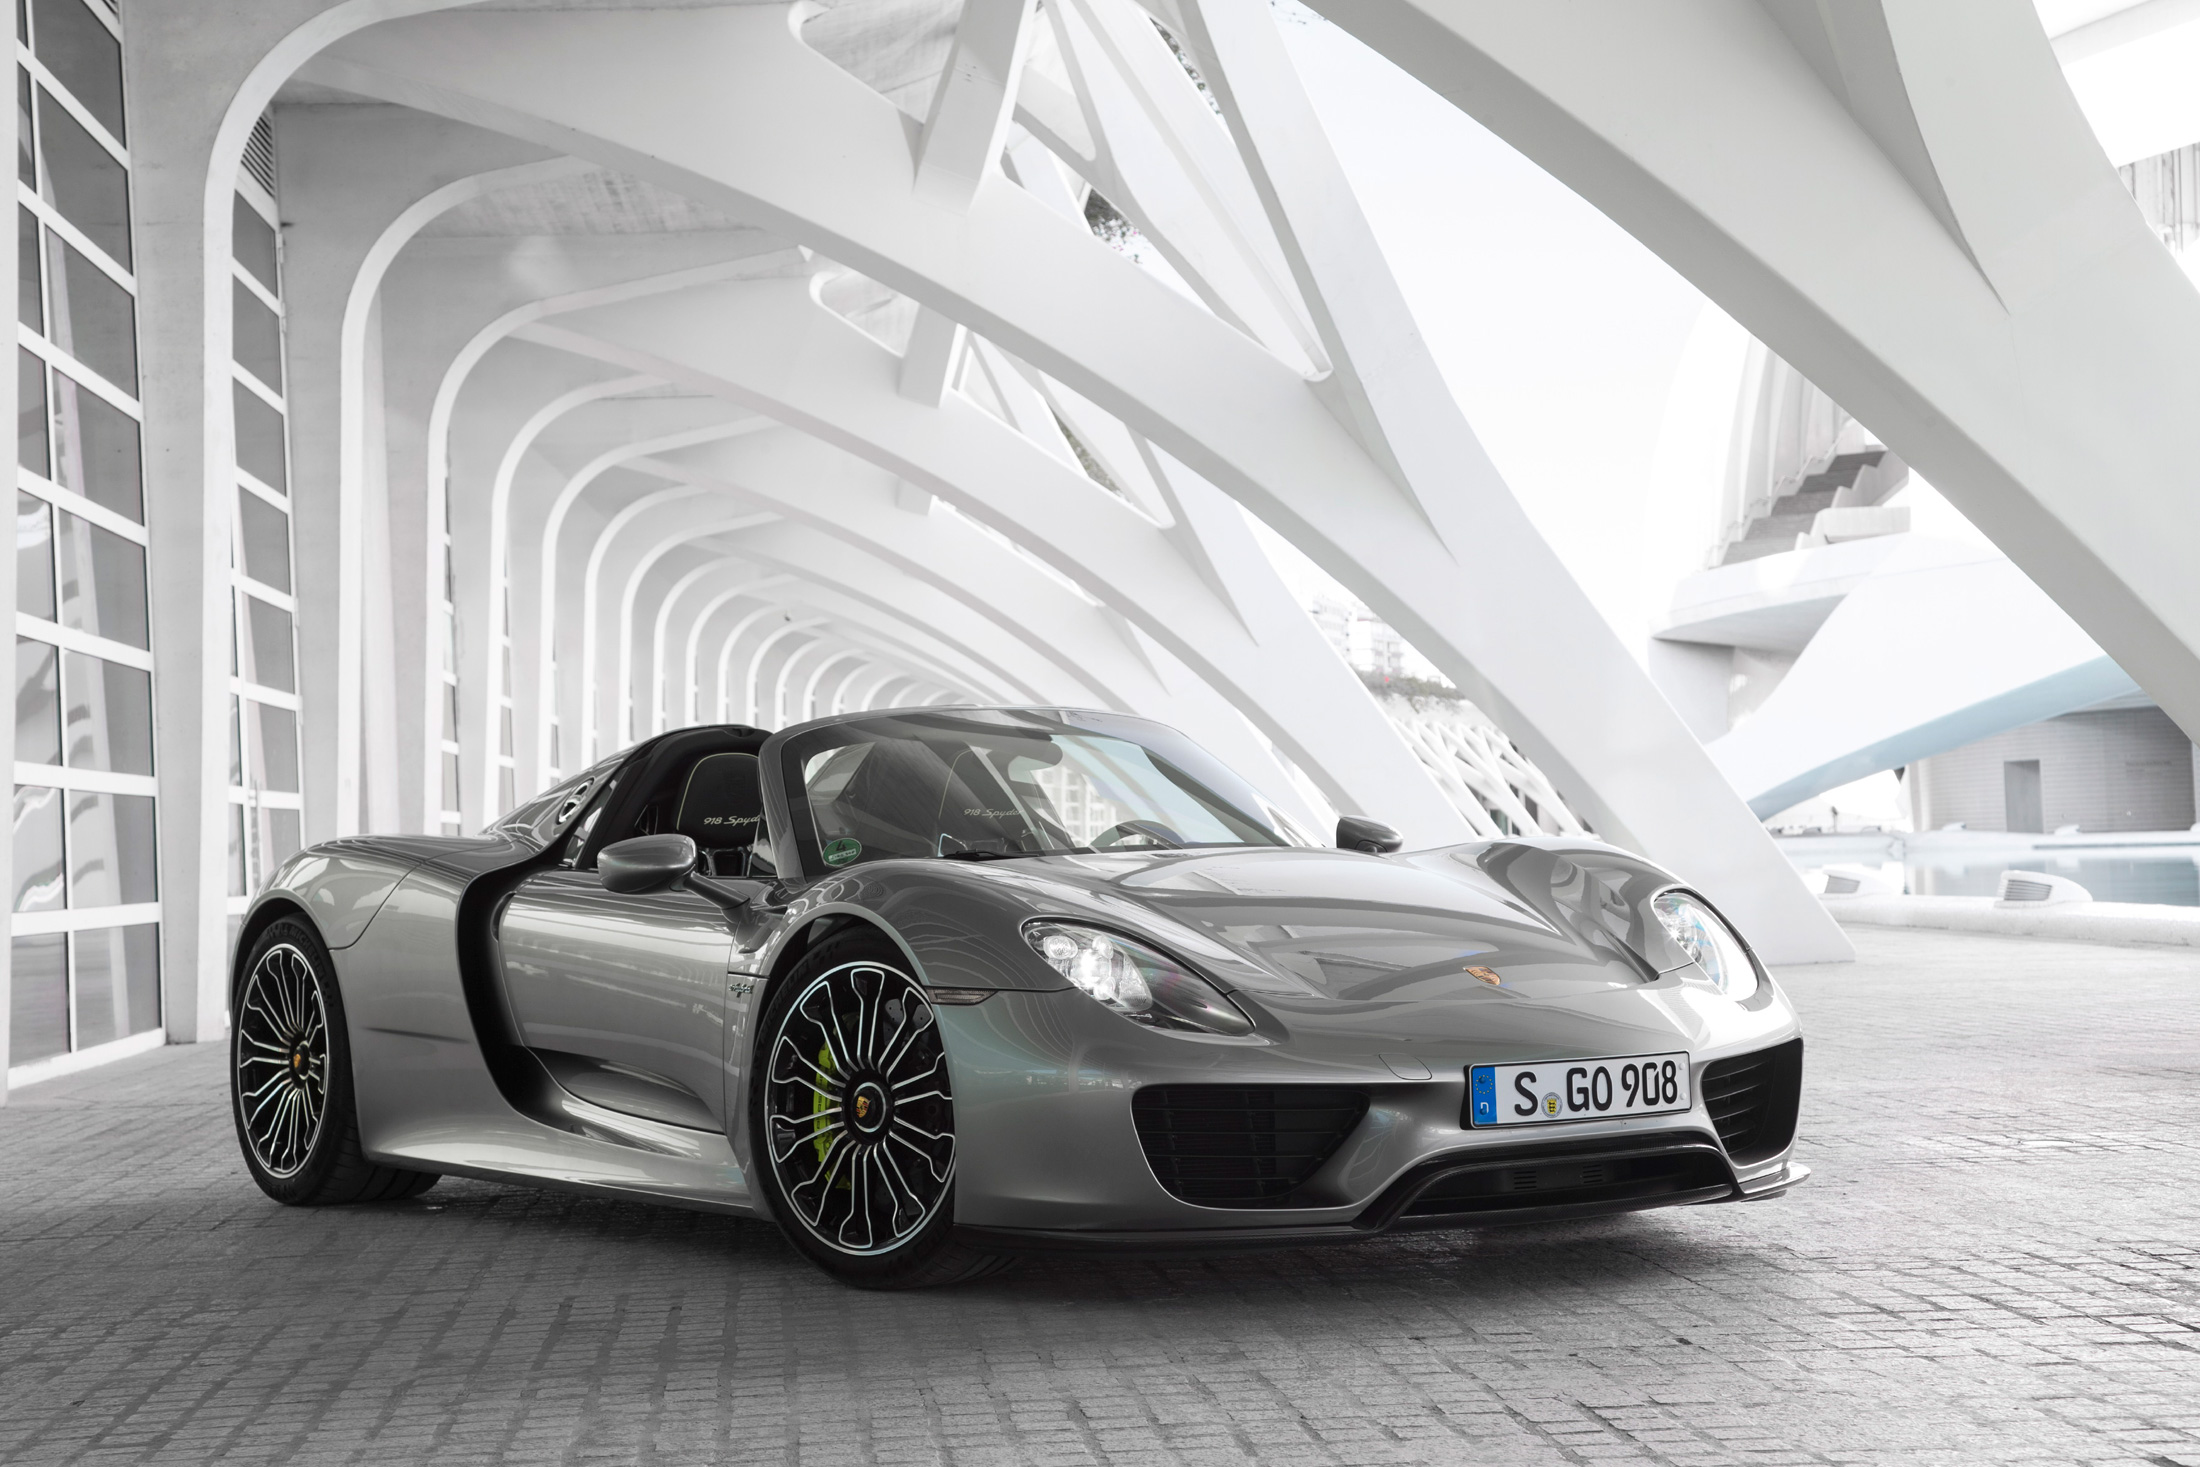 Porsche 918 Spyder Recalled For Wiring Harness Issue Dodge Ram Recall